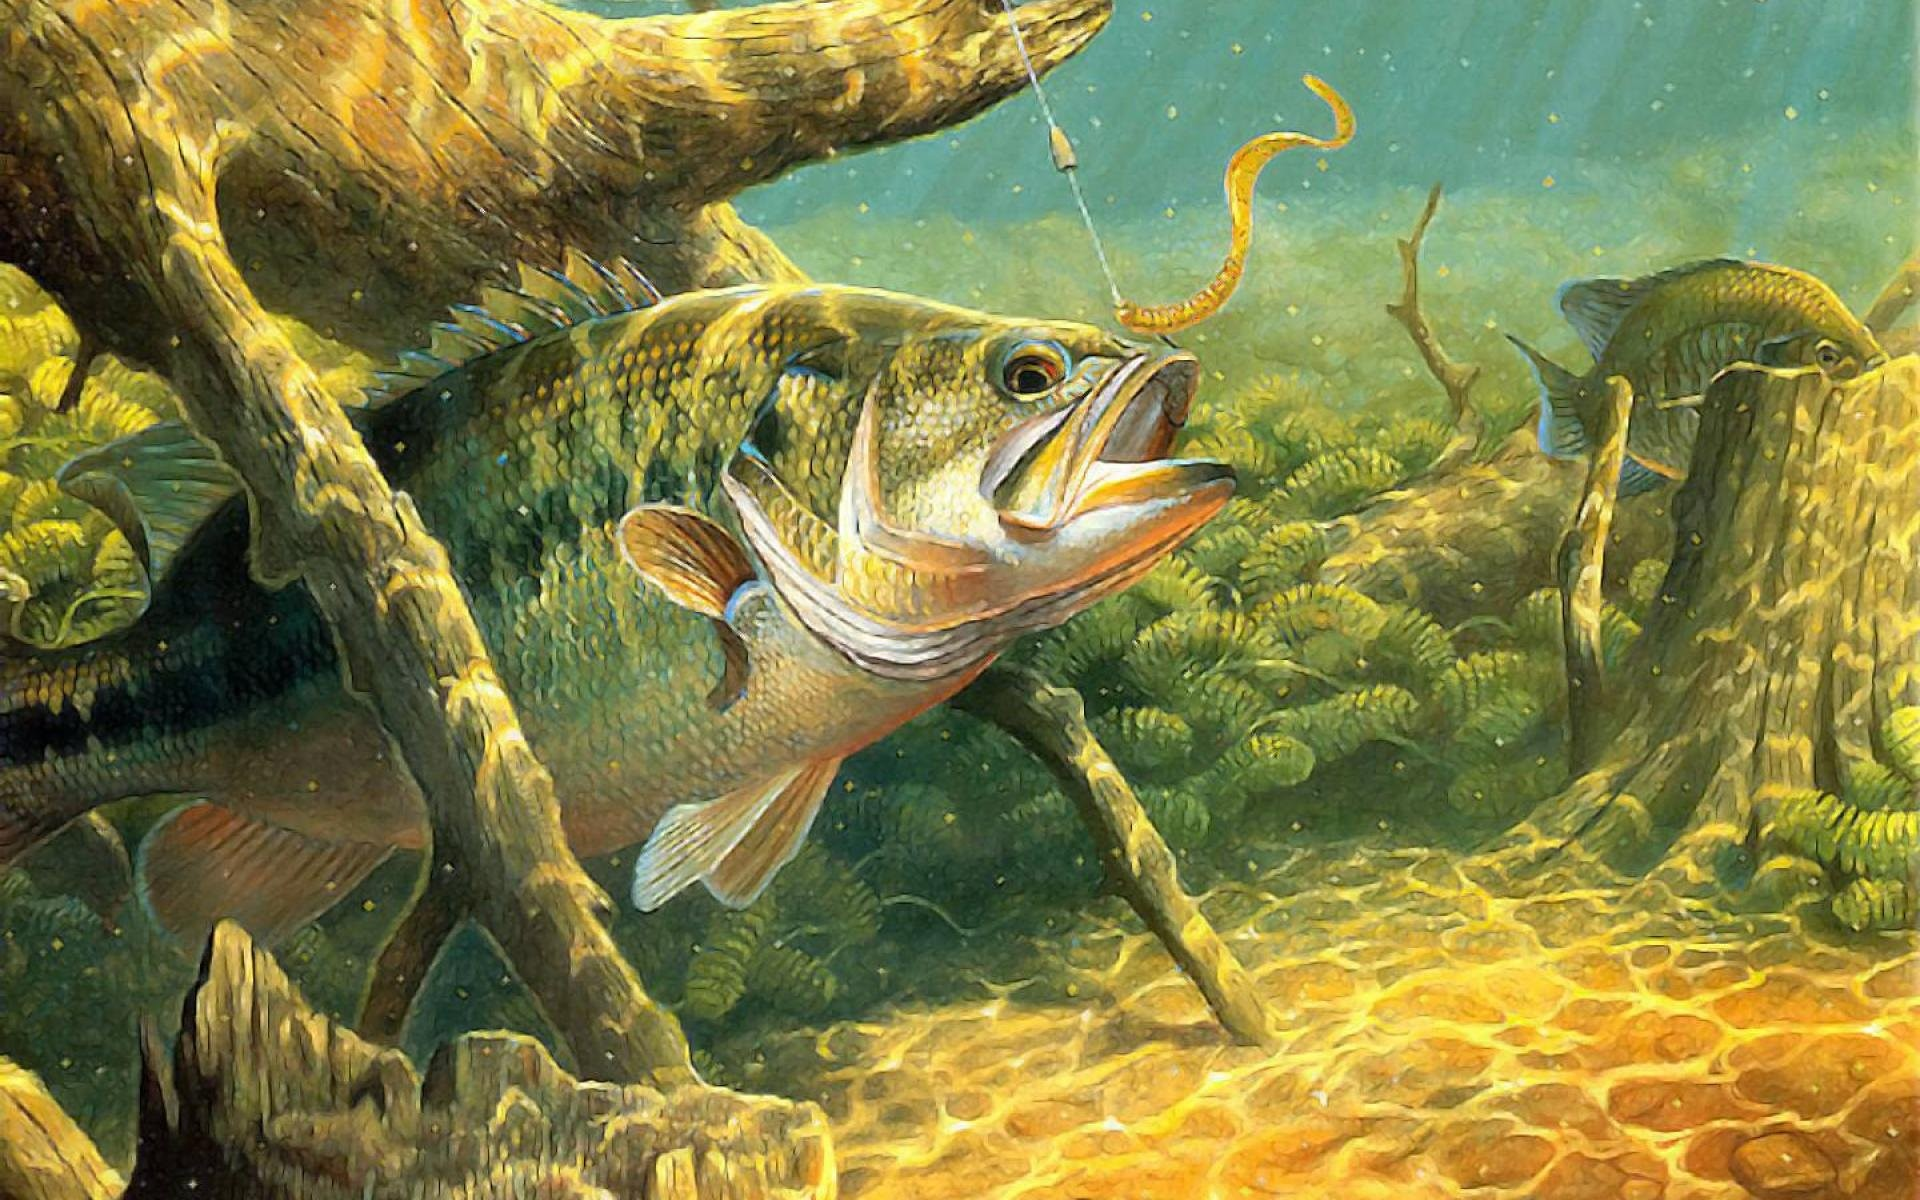 River fish in water – photo#14